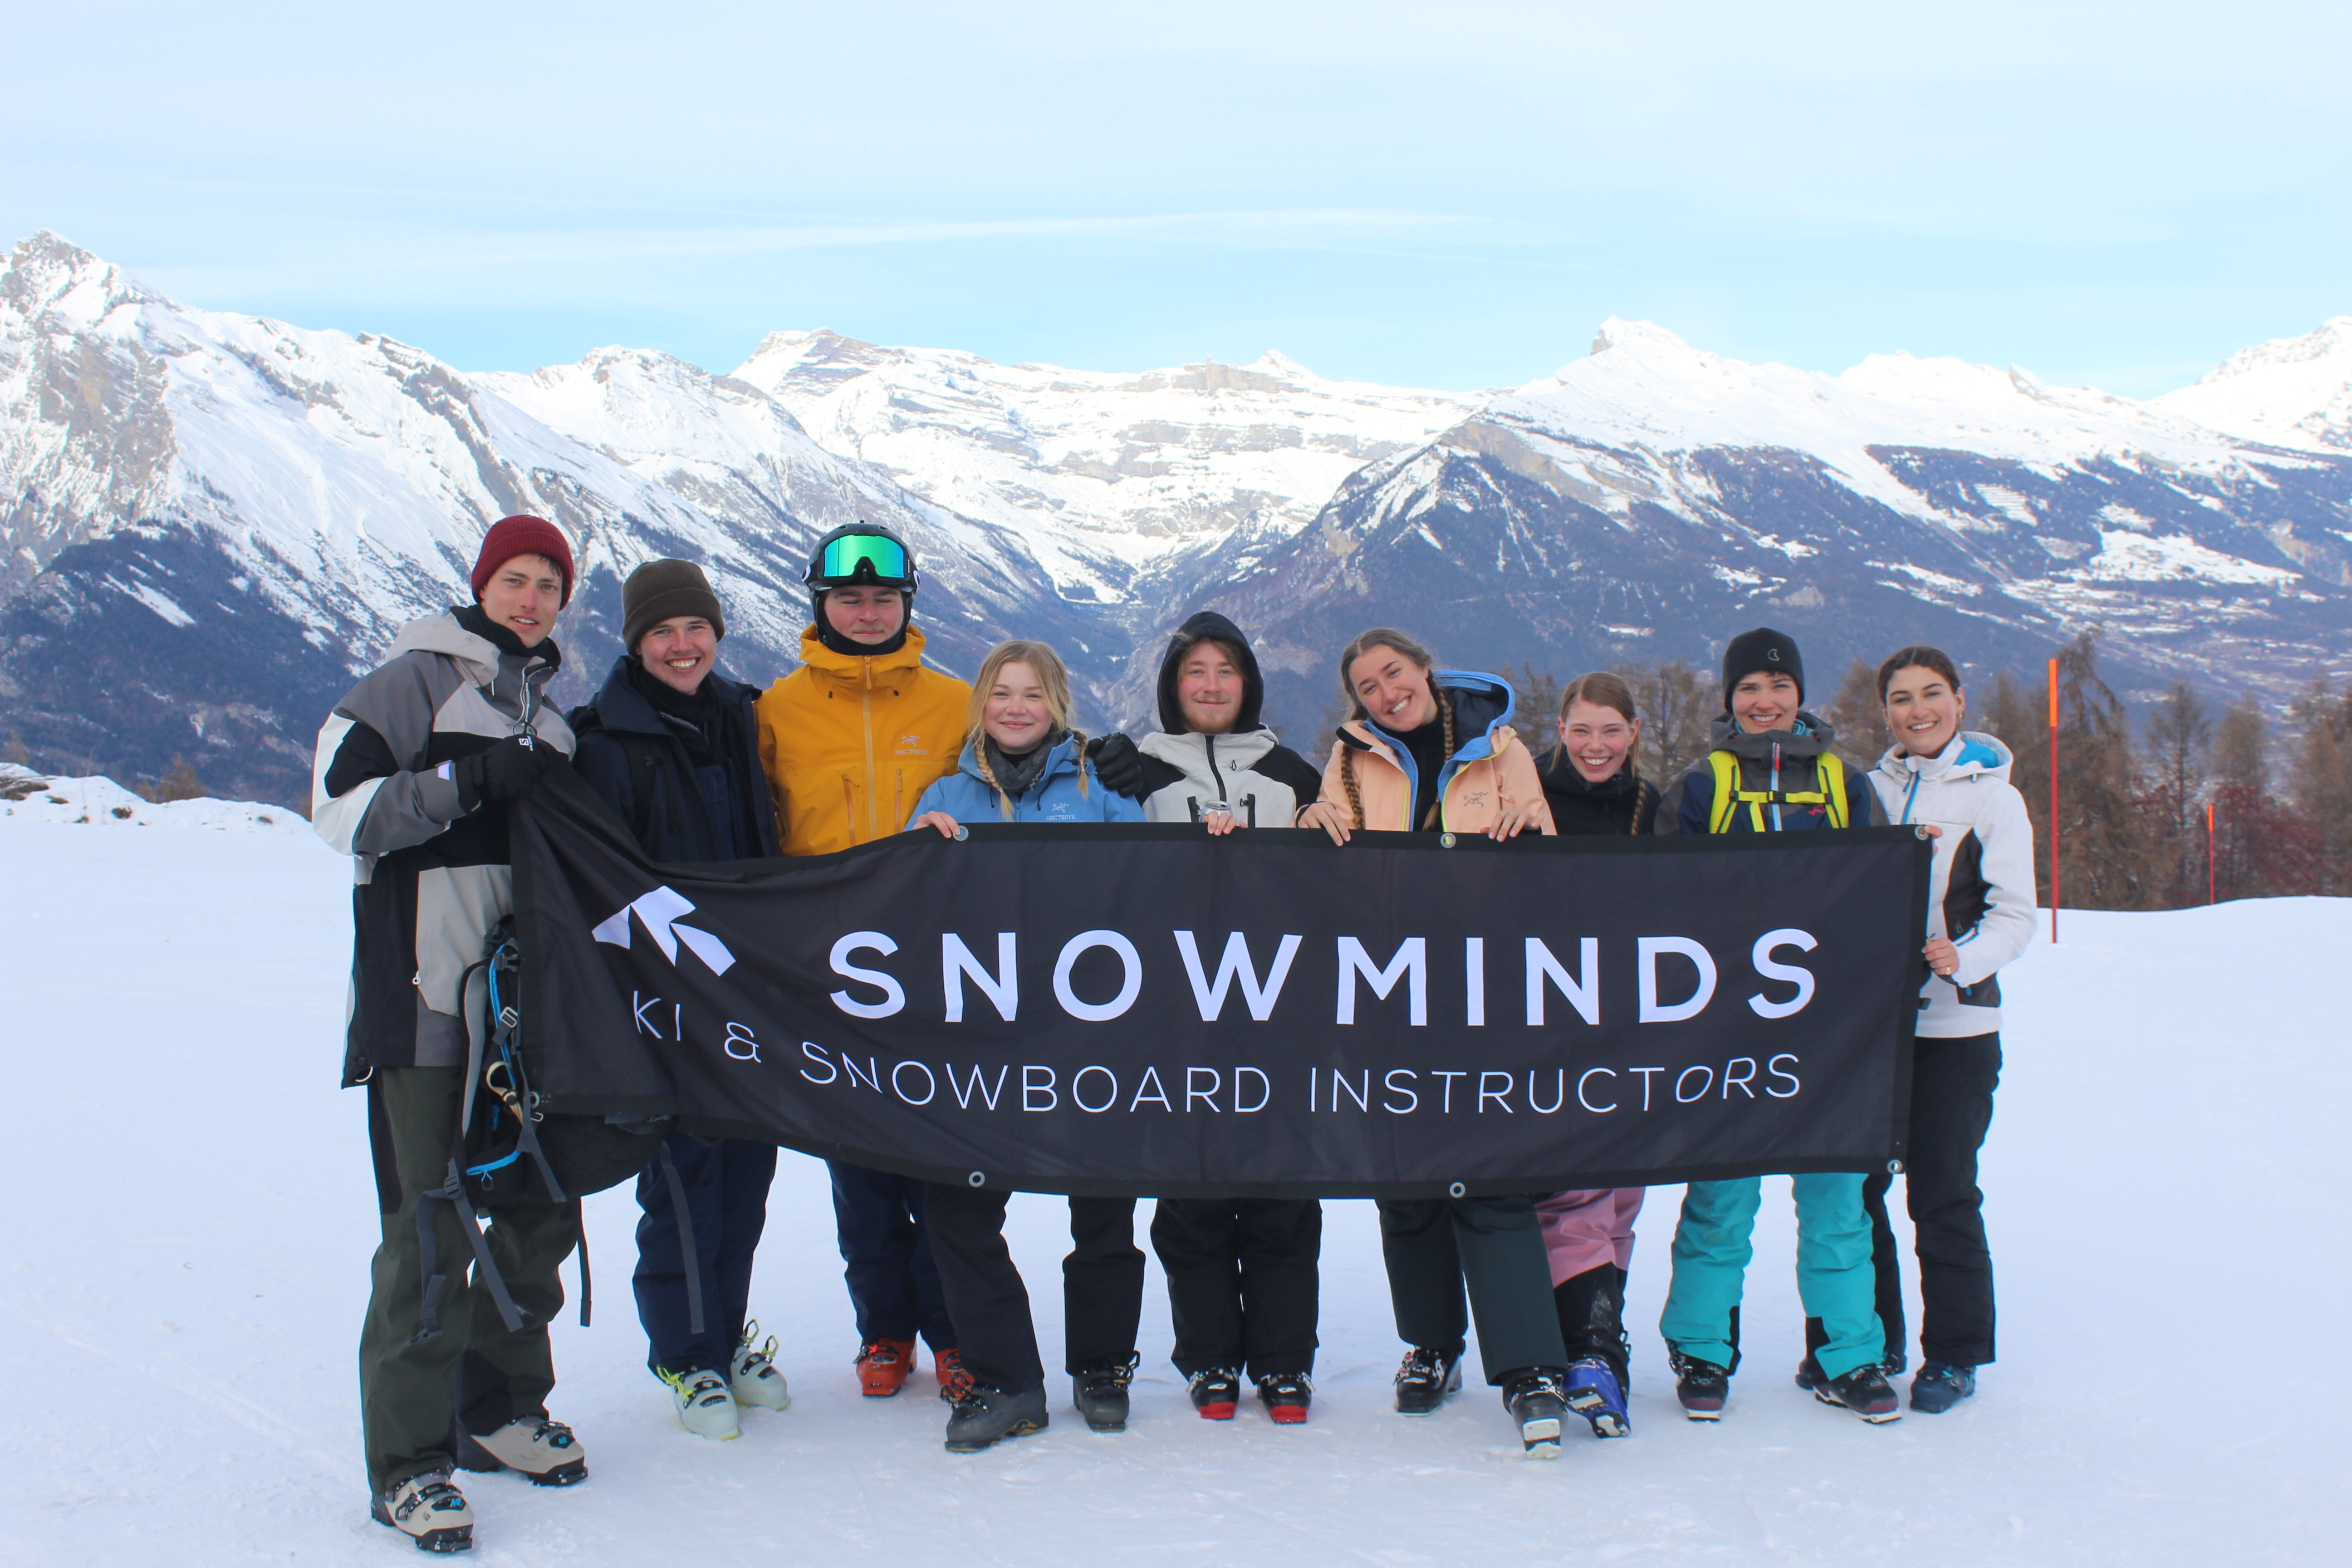 Snowminds instructors in Saas Fee